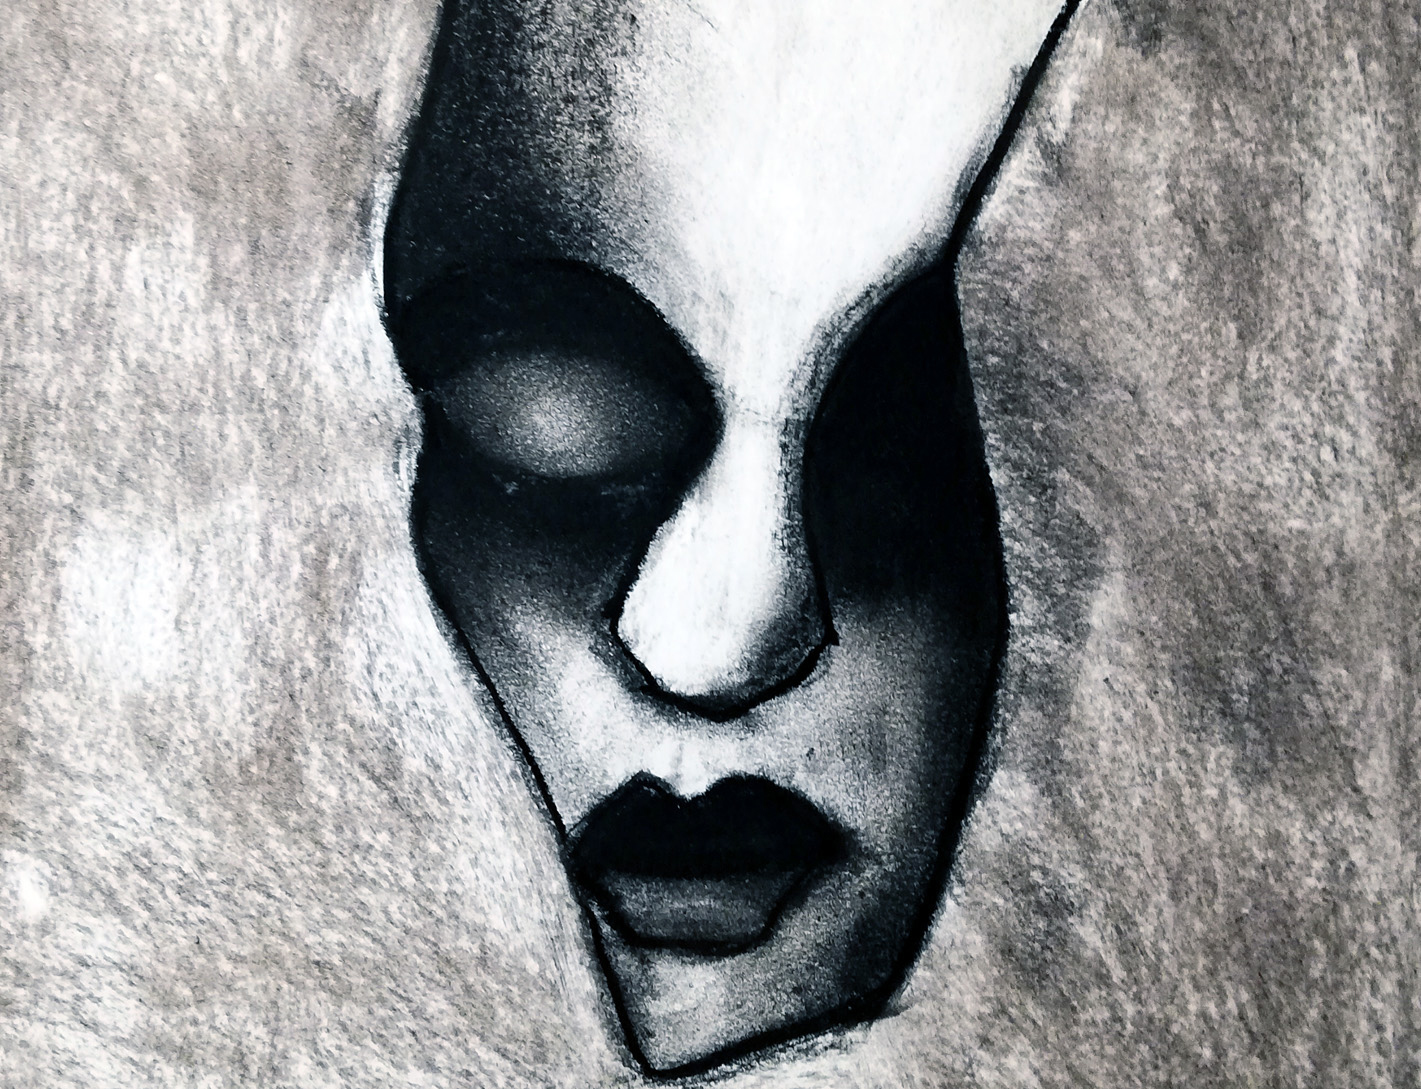 Face sketched in B&W